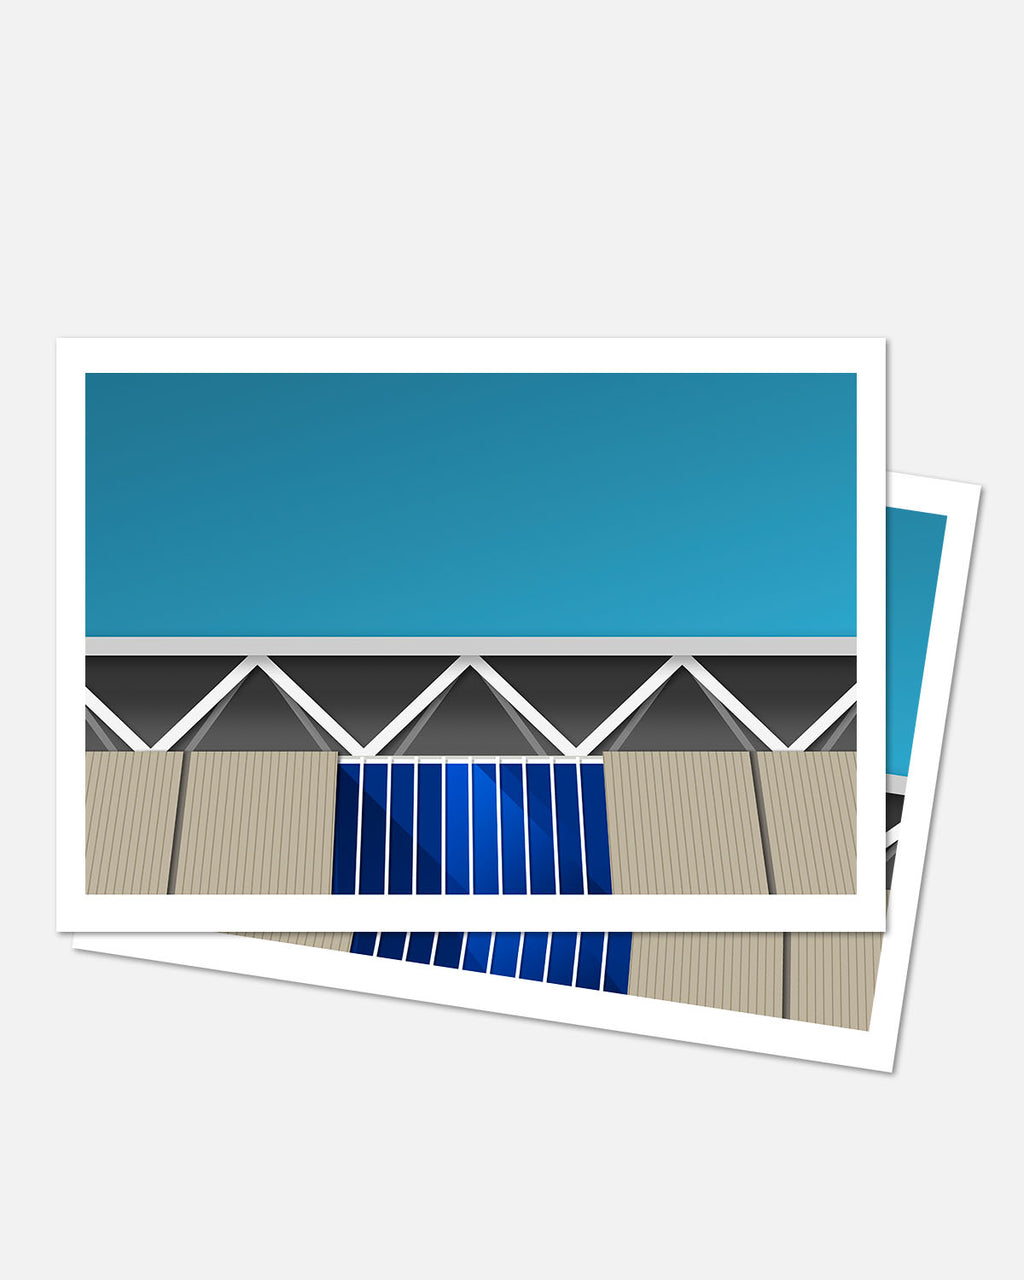 Minimalist Pauley Pavilion Art Card